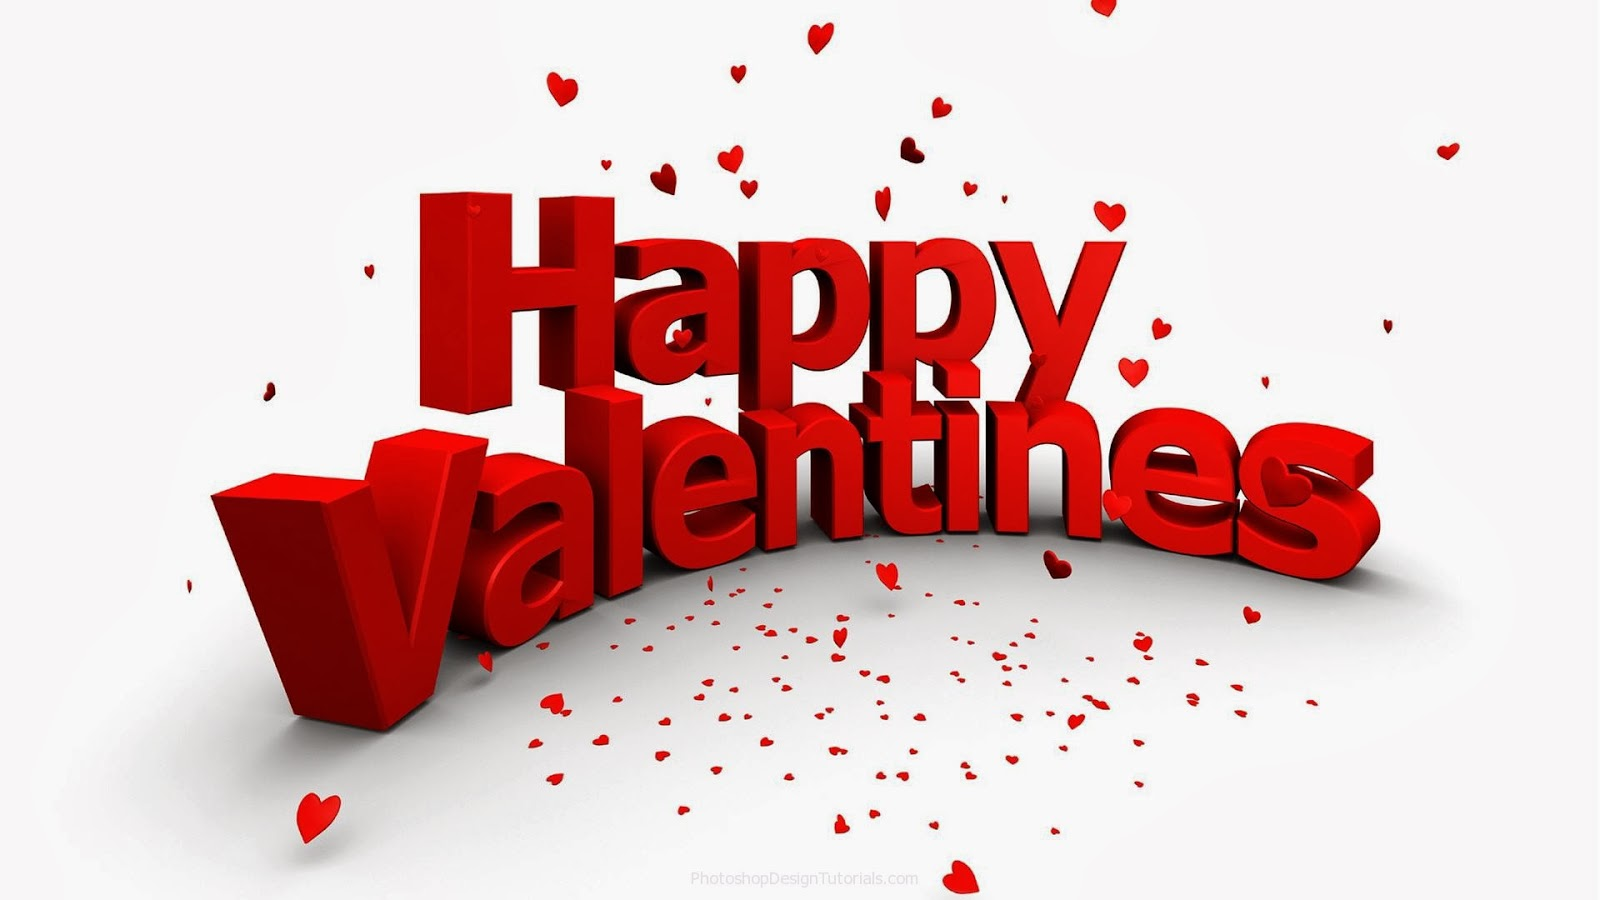 Get Free Happy Valentines Day Wallpaper For Desktop